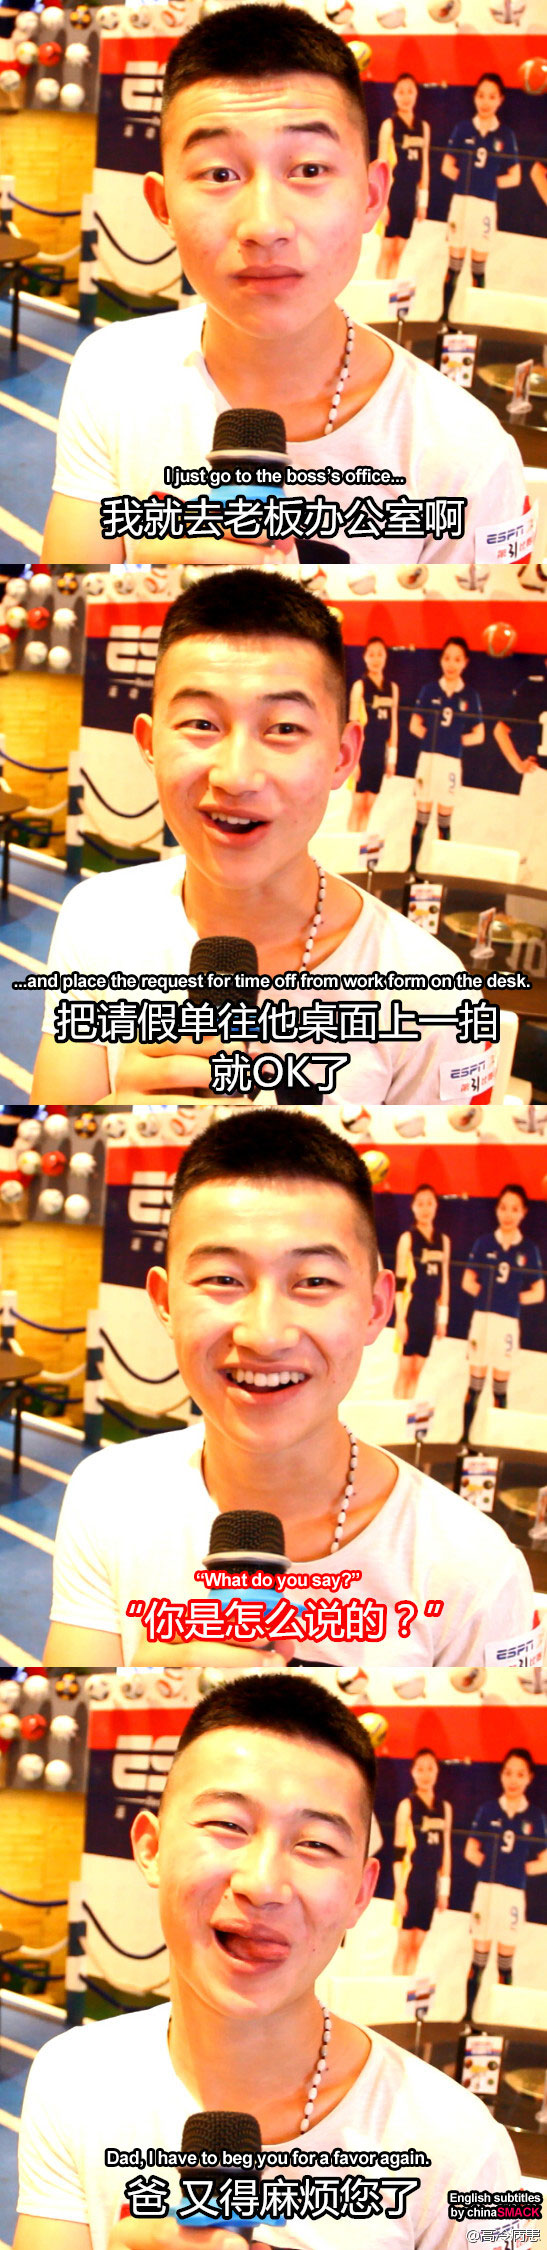 chinese-netizen-excuses-for-bosses-wives-to-watch-world-cup-02-father-english-subtitles